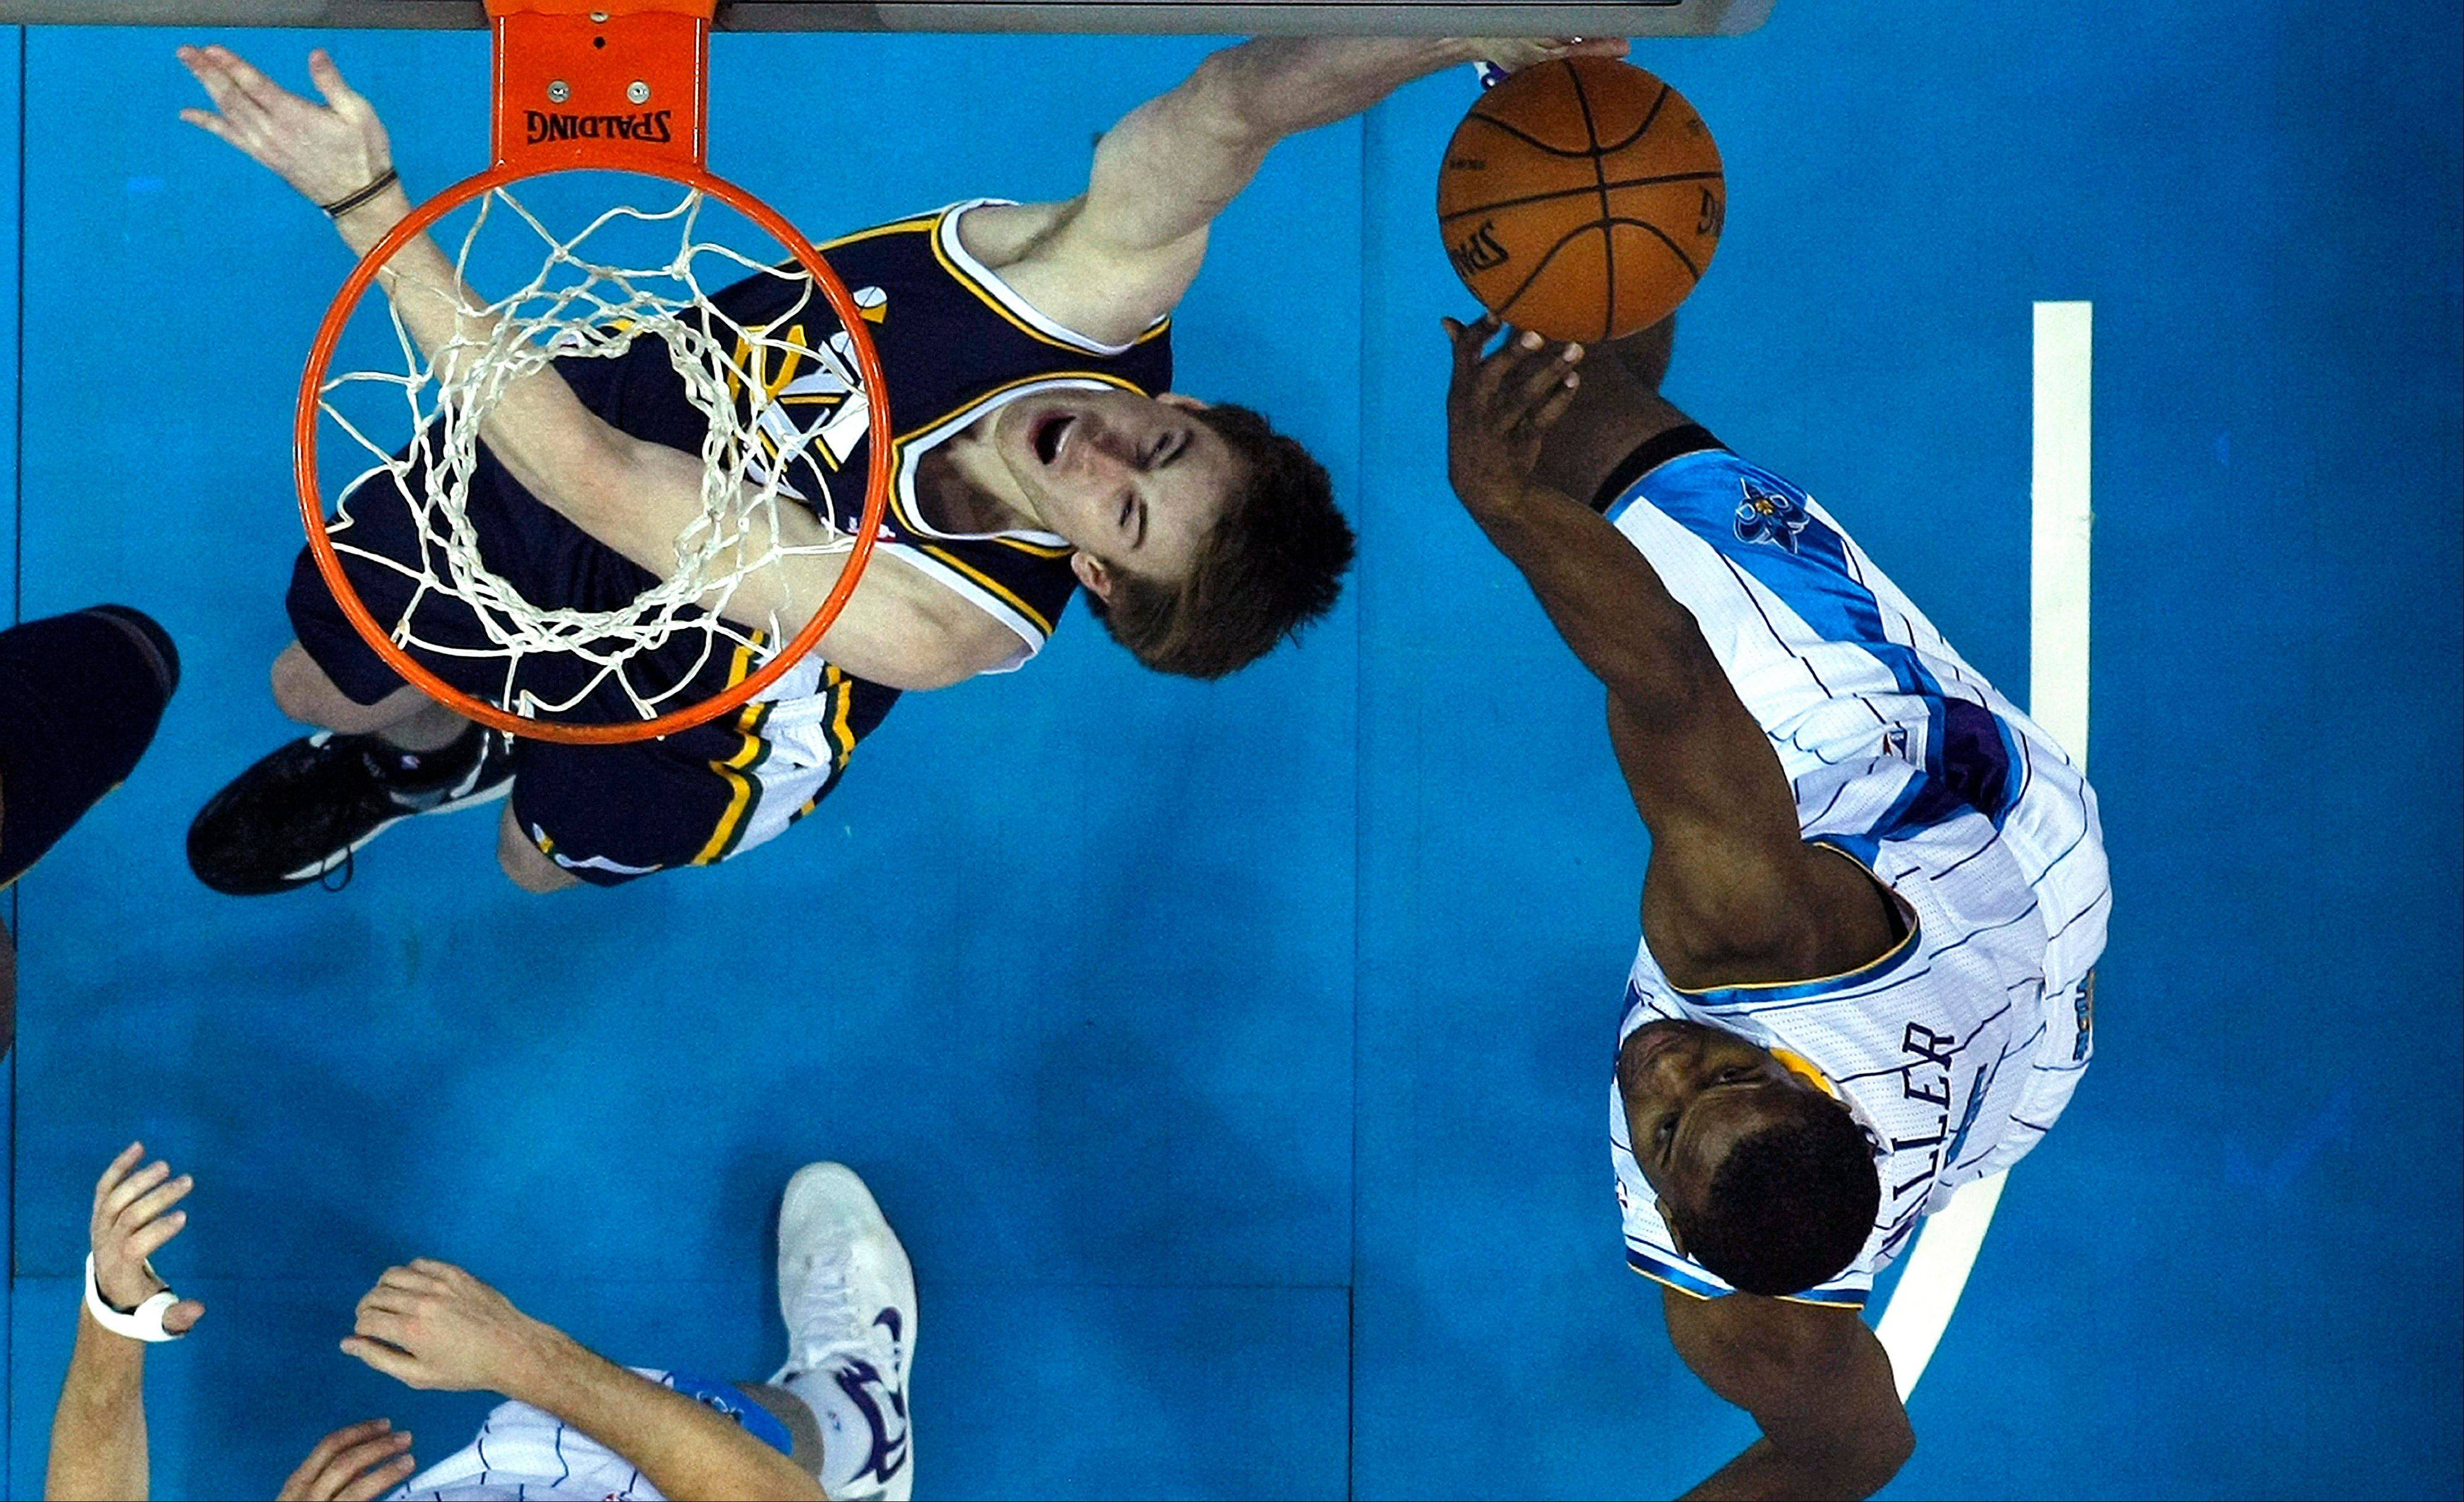 Utah Jazz guard Gordon Hayward (20) battles under the basket with New Orleans Hornets forward Darius Miller Wednesday during the first half in New Orleans.